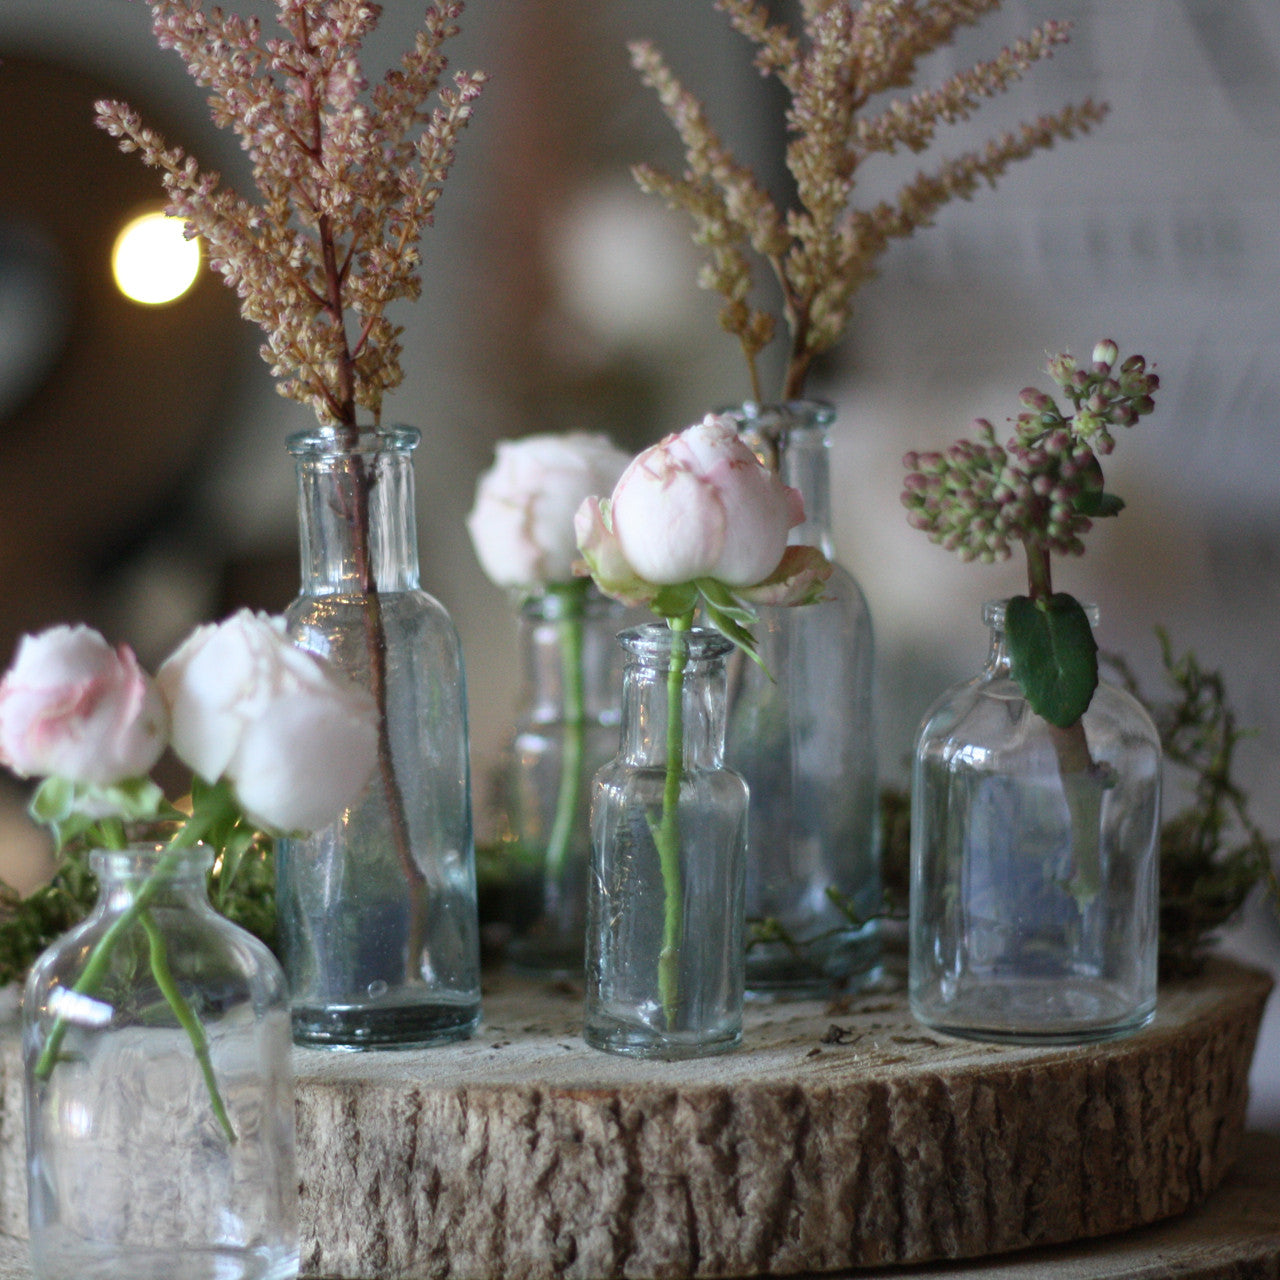 Cork Art Wedding: Mini Glass Bottles With Cork Stopper